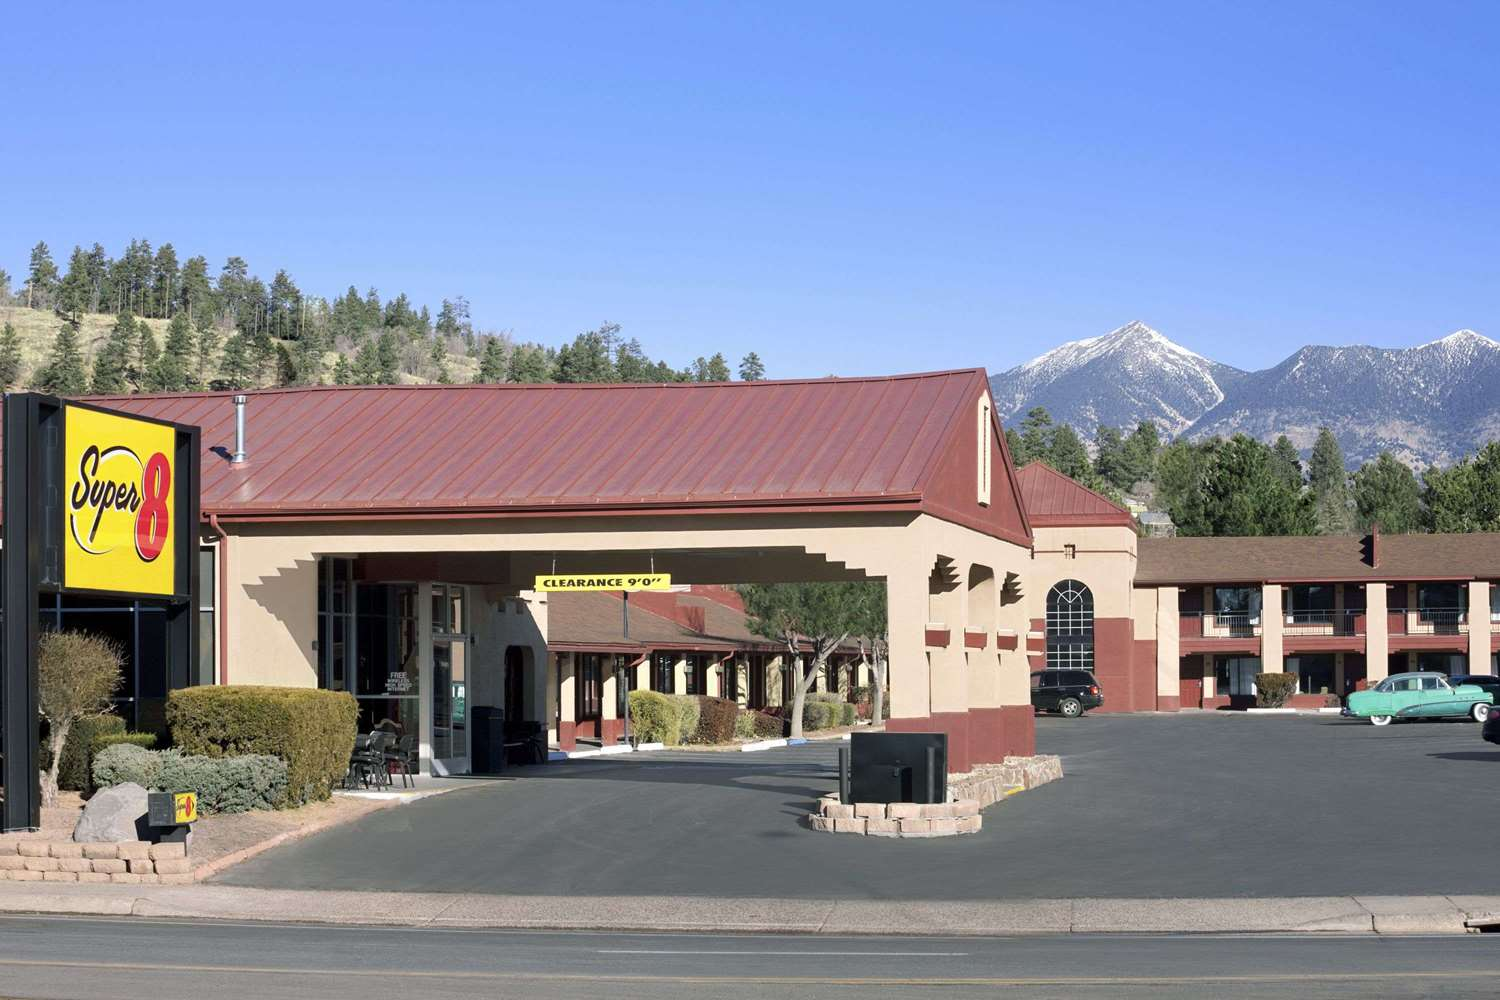 Super 8 Hotel West Flagstaff